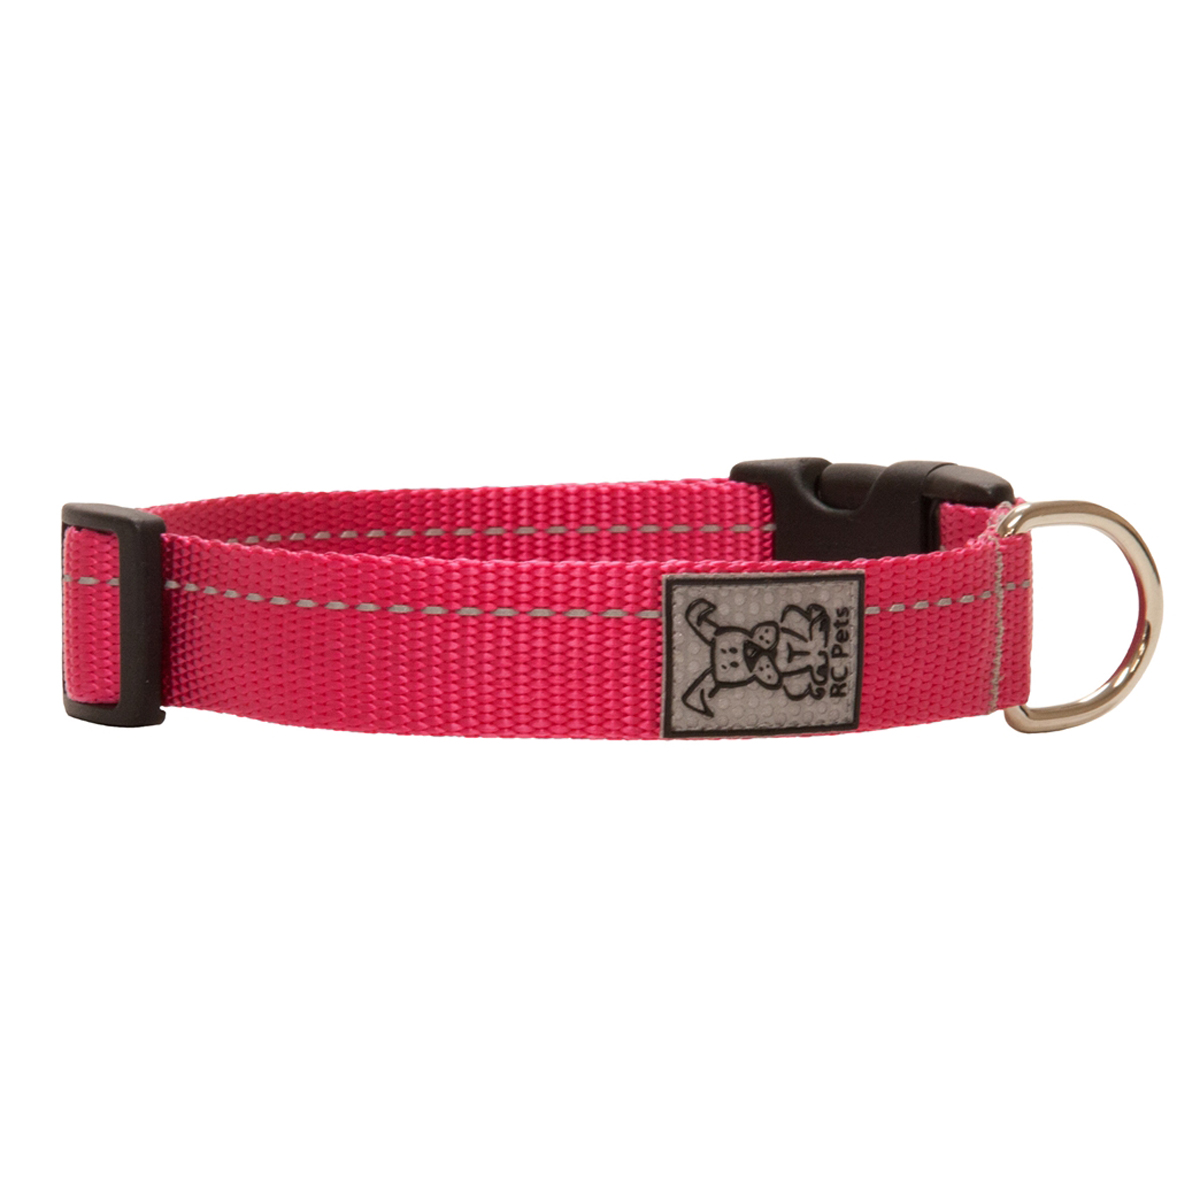 Primary Clip Dog Collar - Raspberry